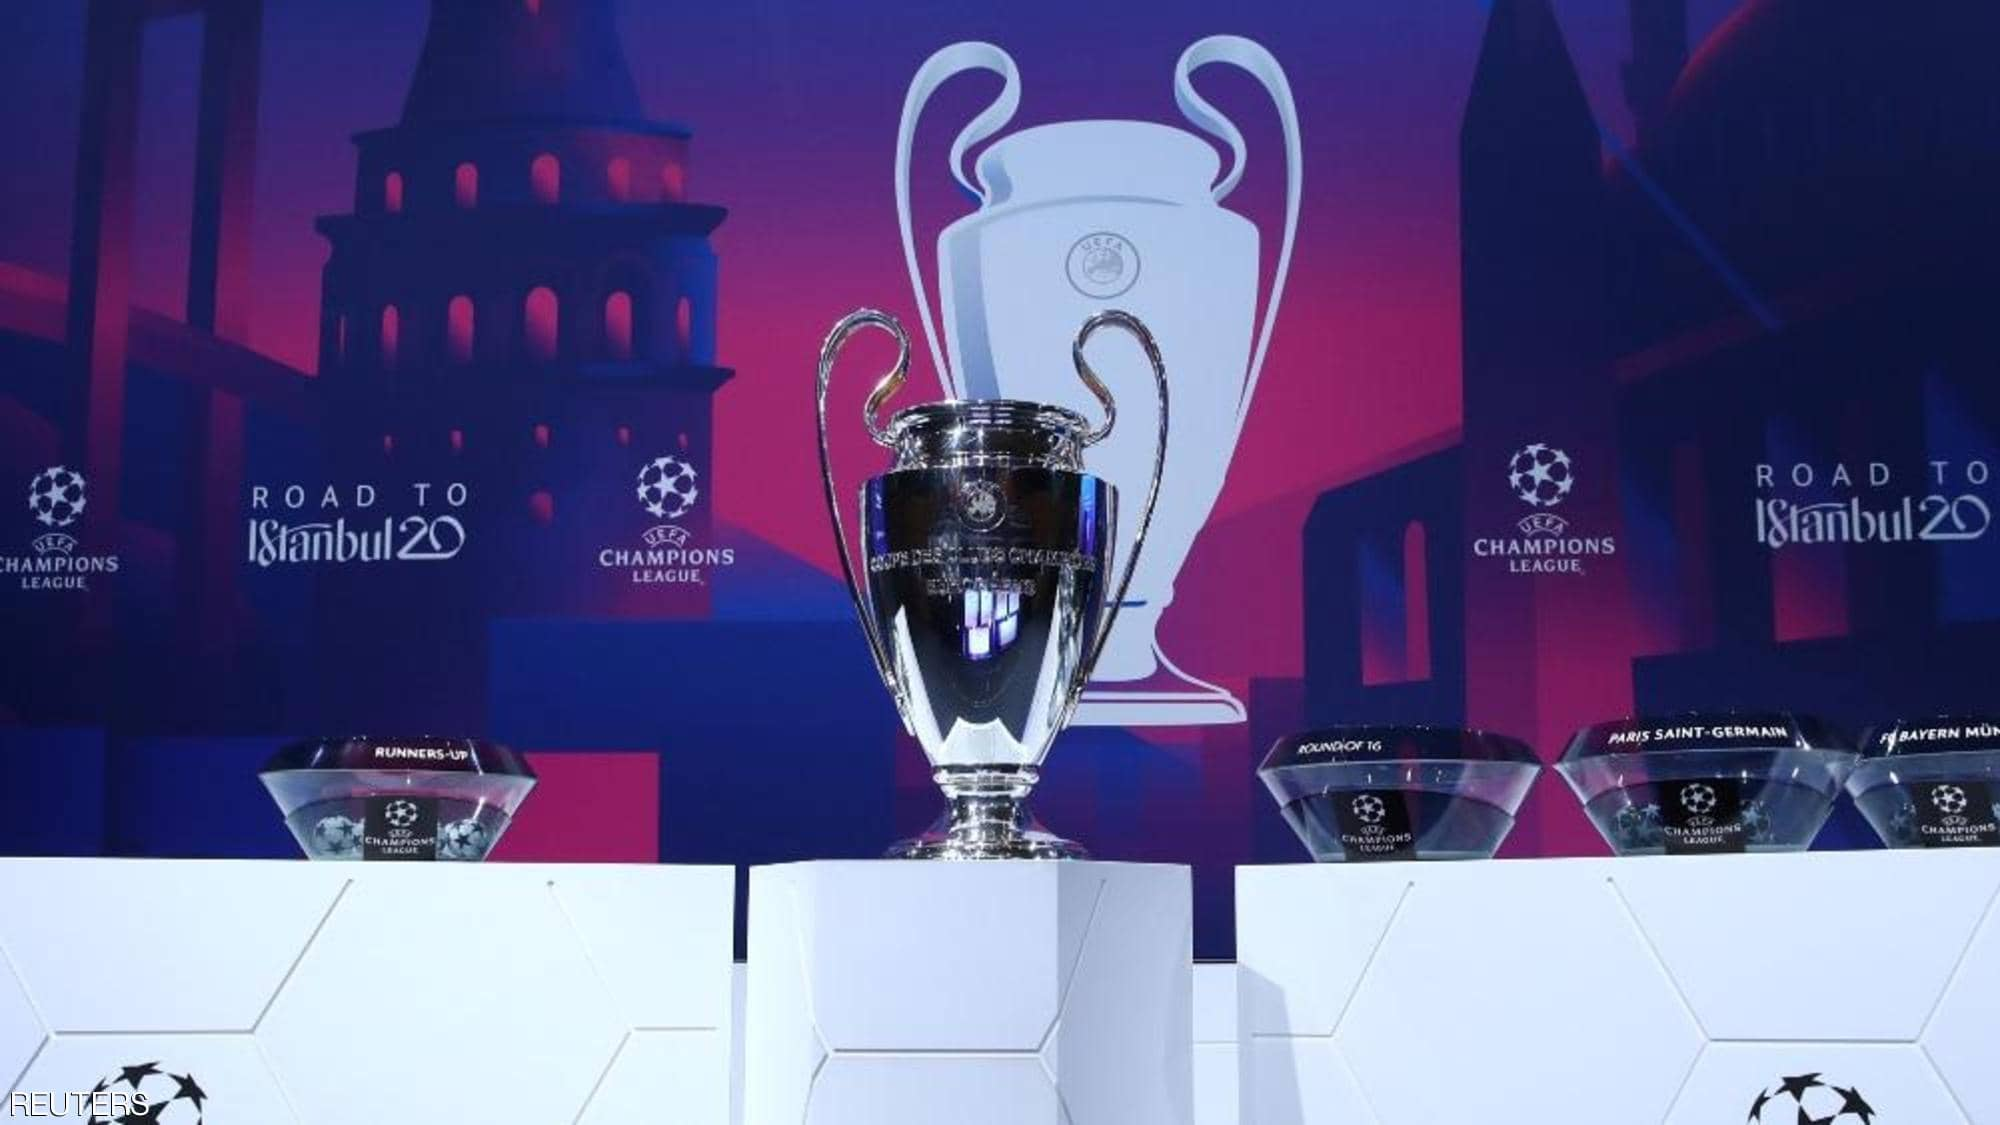 UEFA confirmed Venues for Round of 16 matches